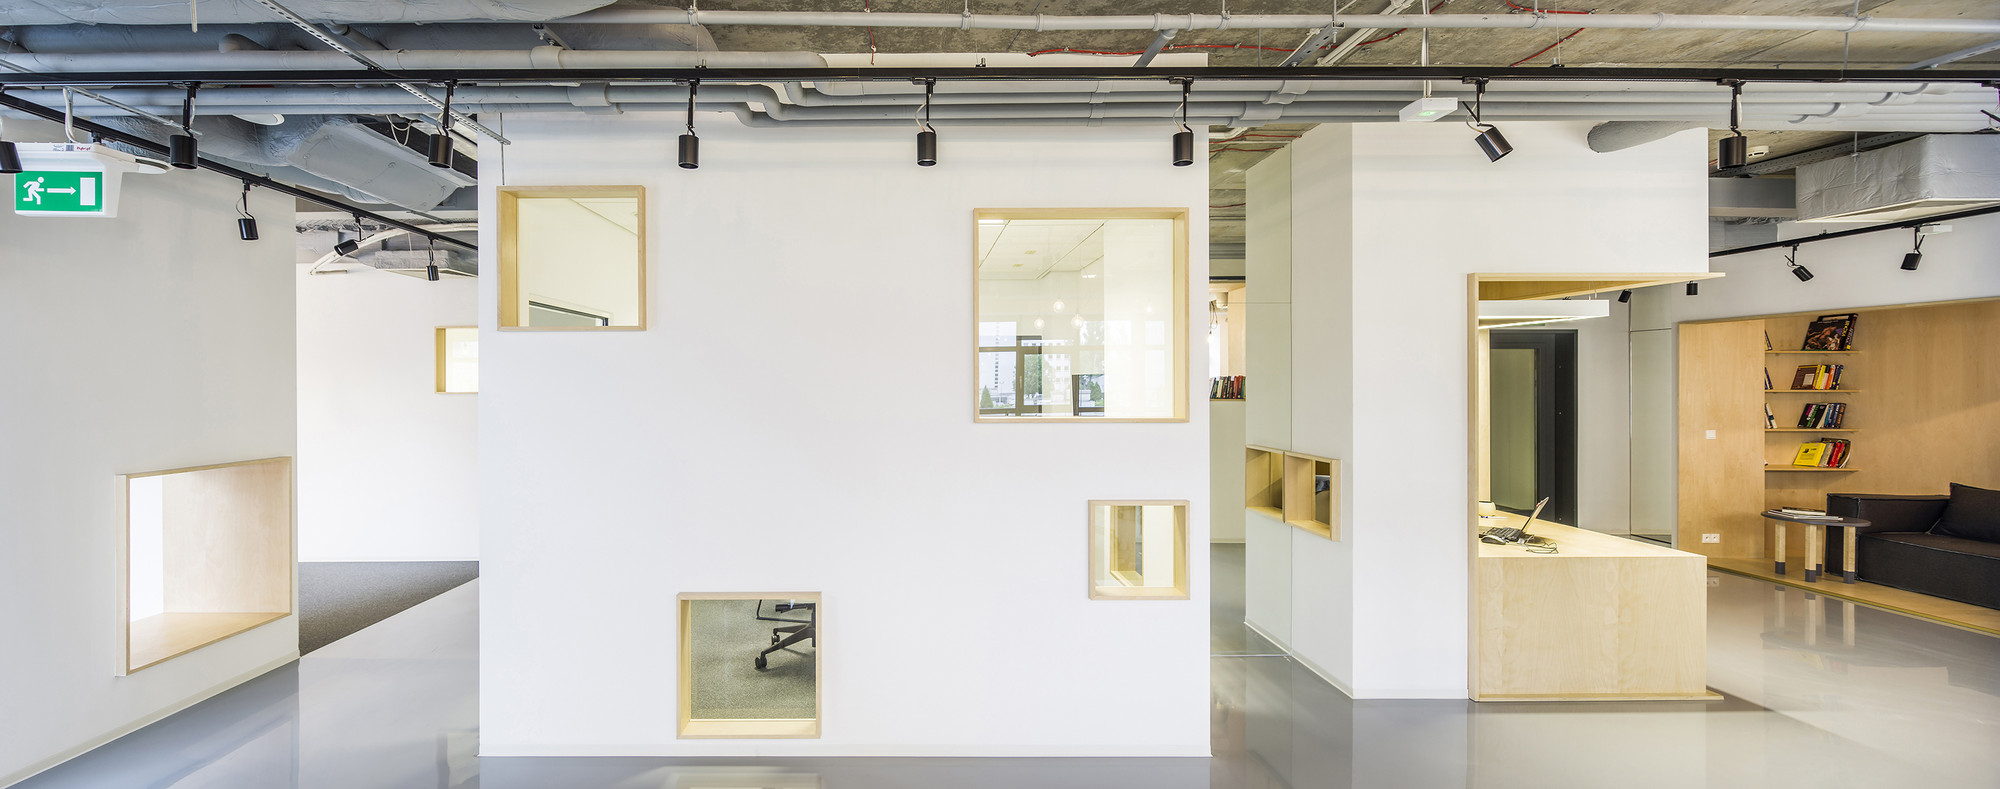 Gallery Of DECERTO MOKO Architects MFRMGR 12